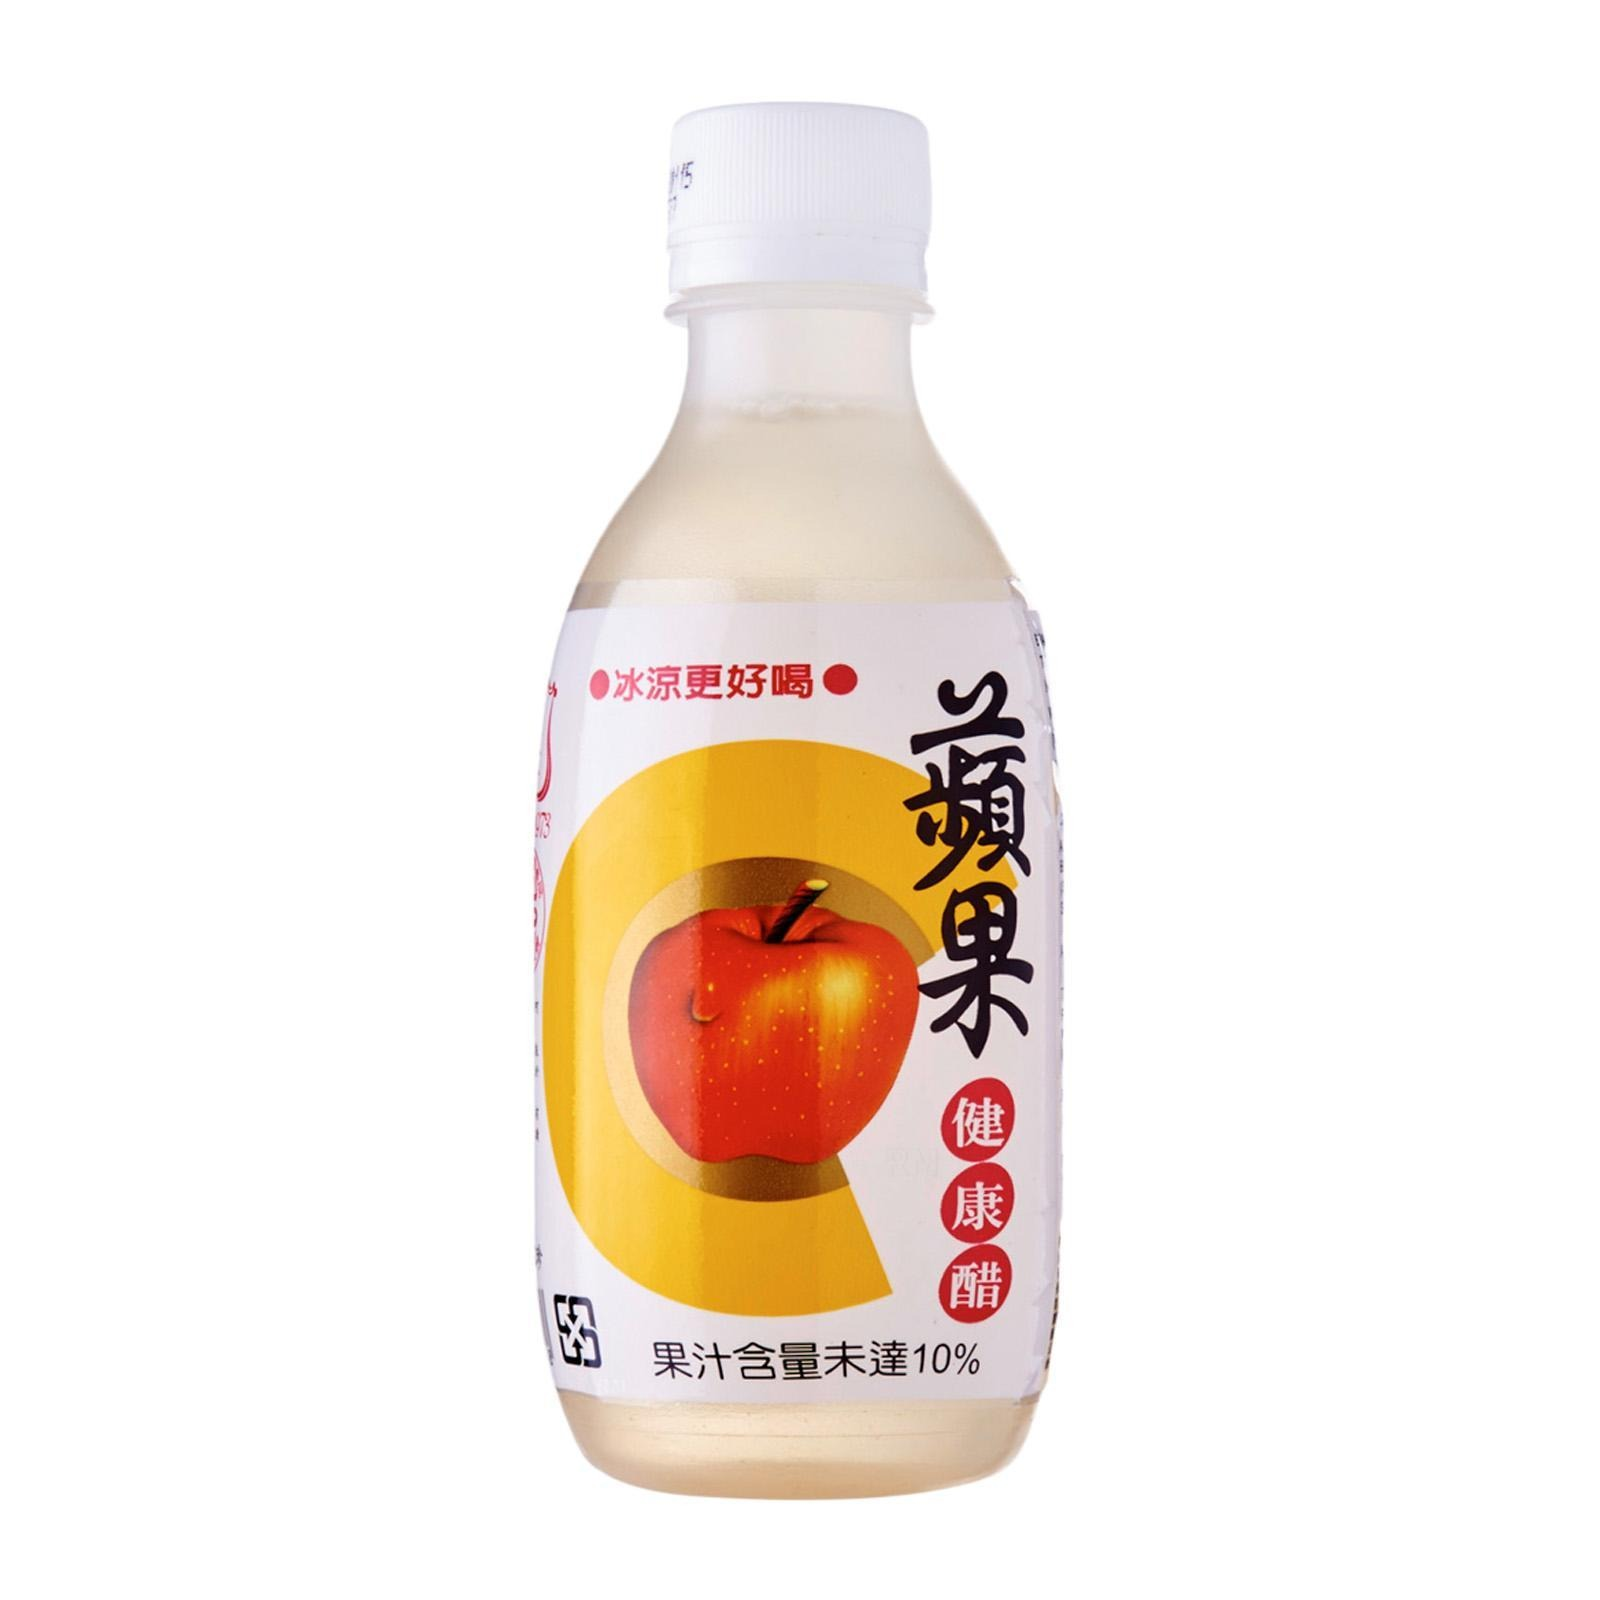 Pai Chia Chen Fruit Vinegar Ready to Drink - Apple